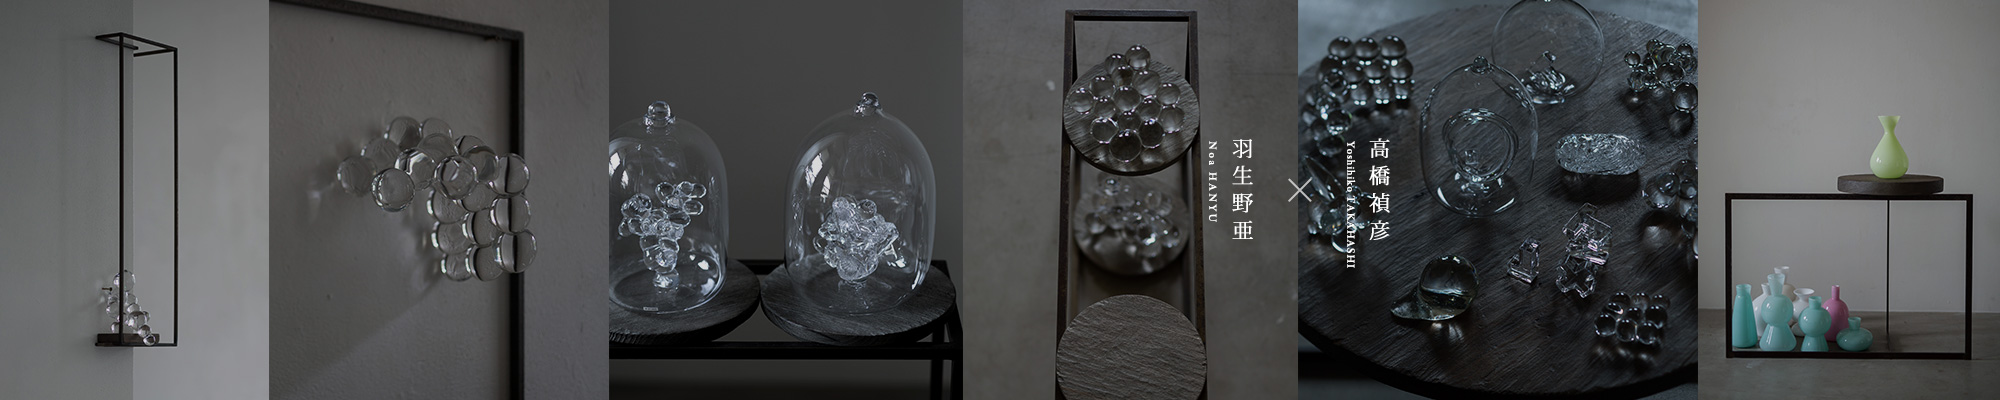 Glass : Yoshihiko TAKAHASHI & Wood + Steel : Noa HANYU